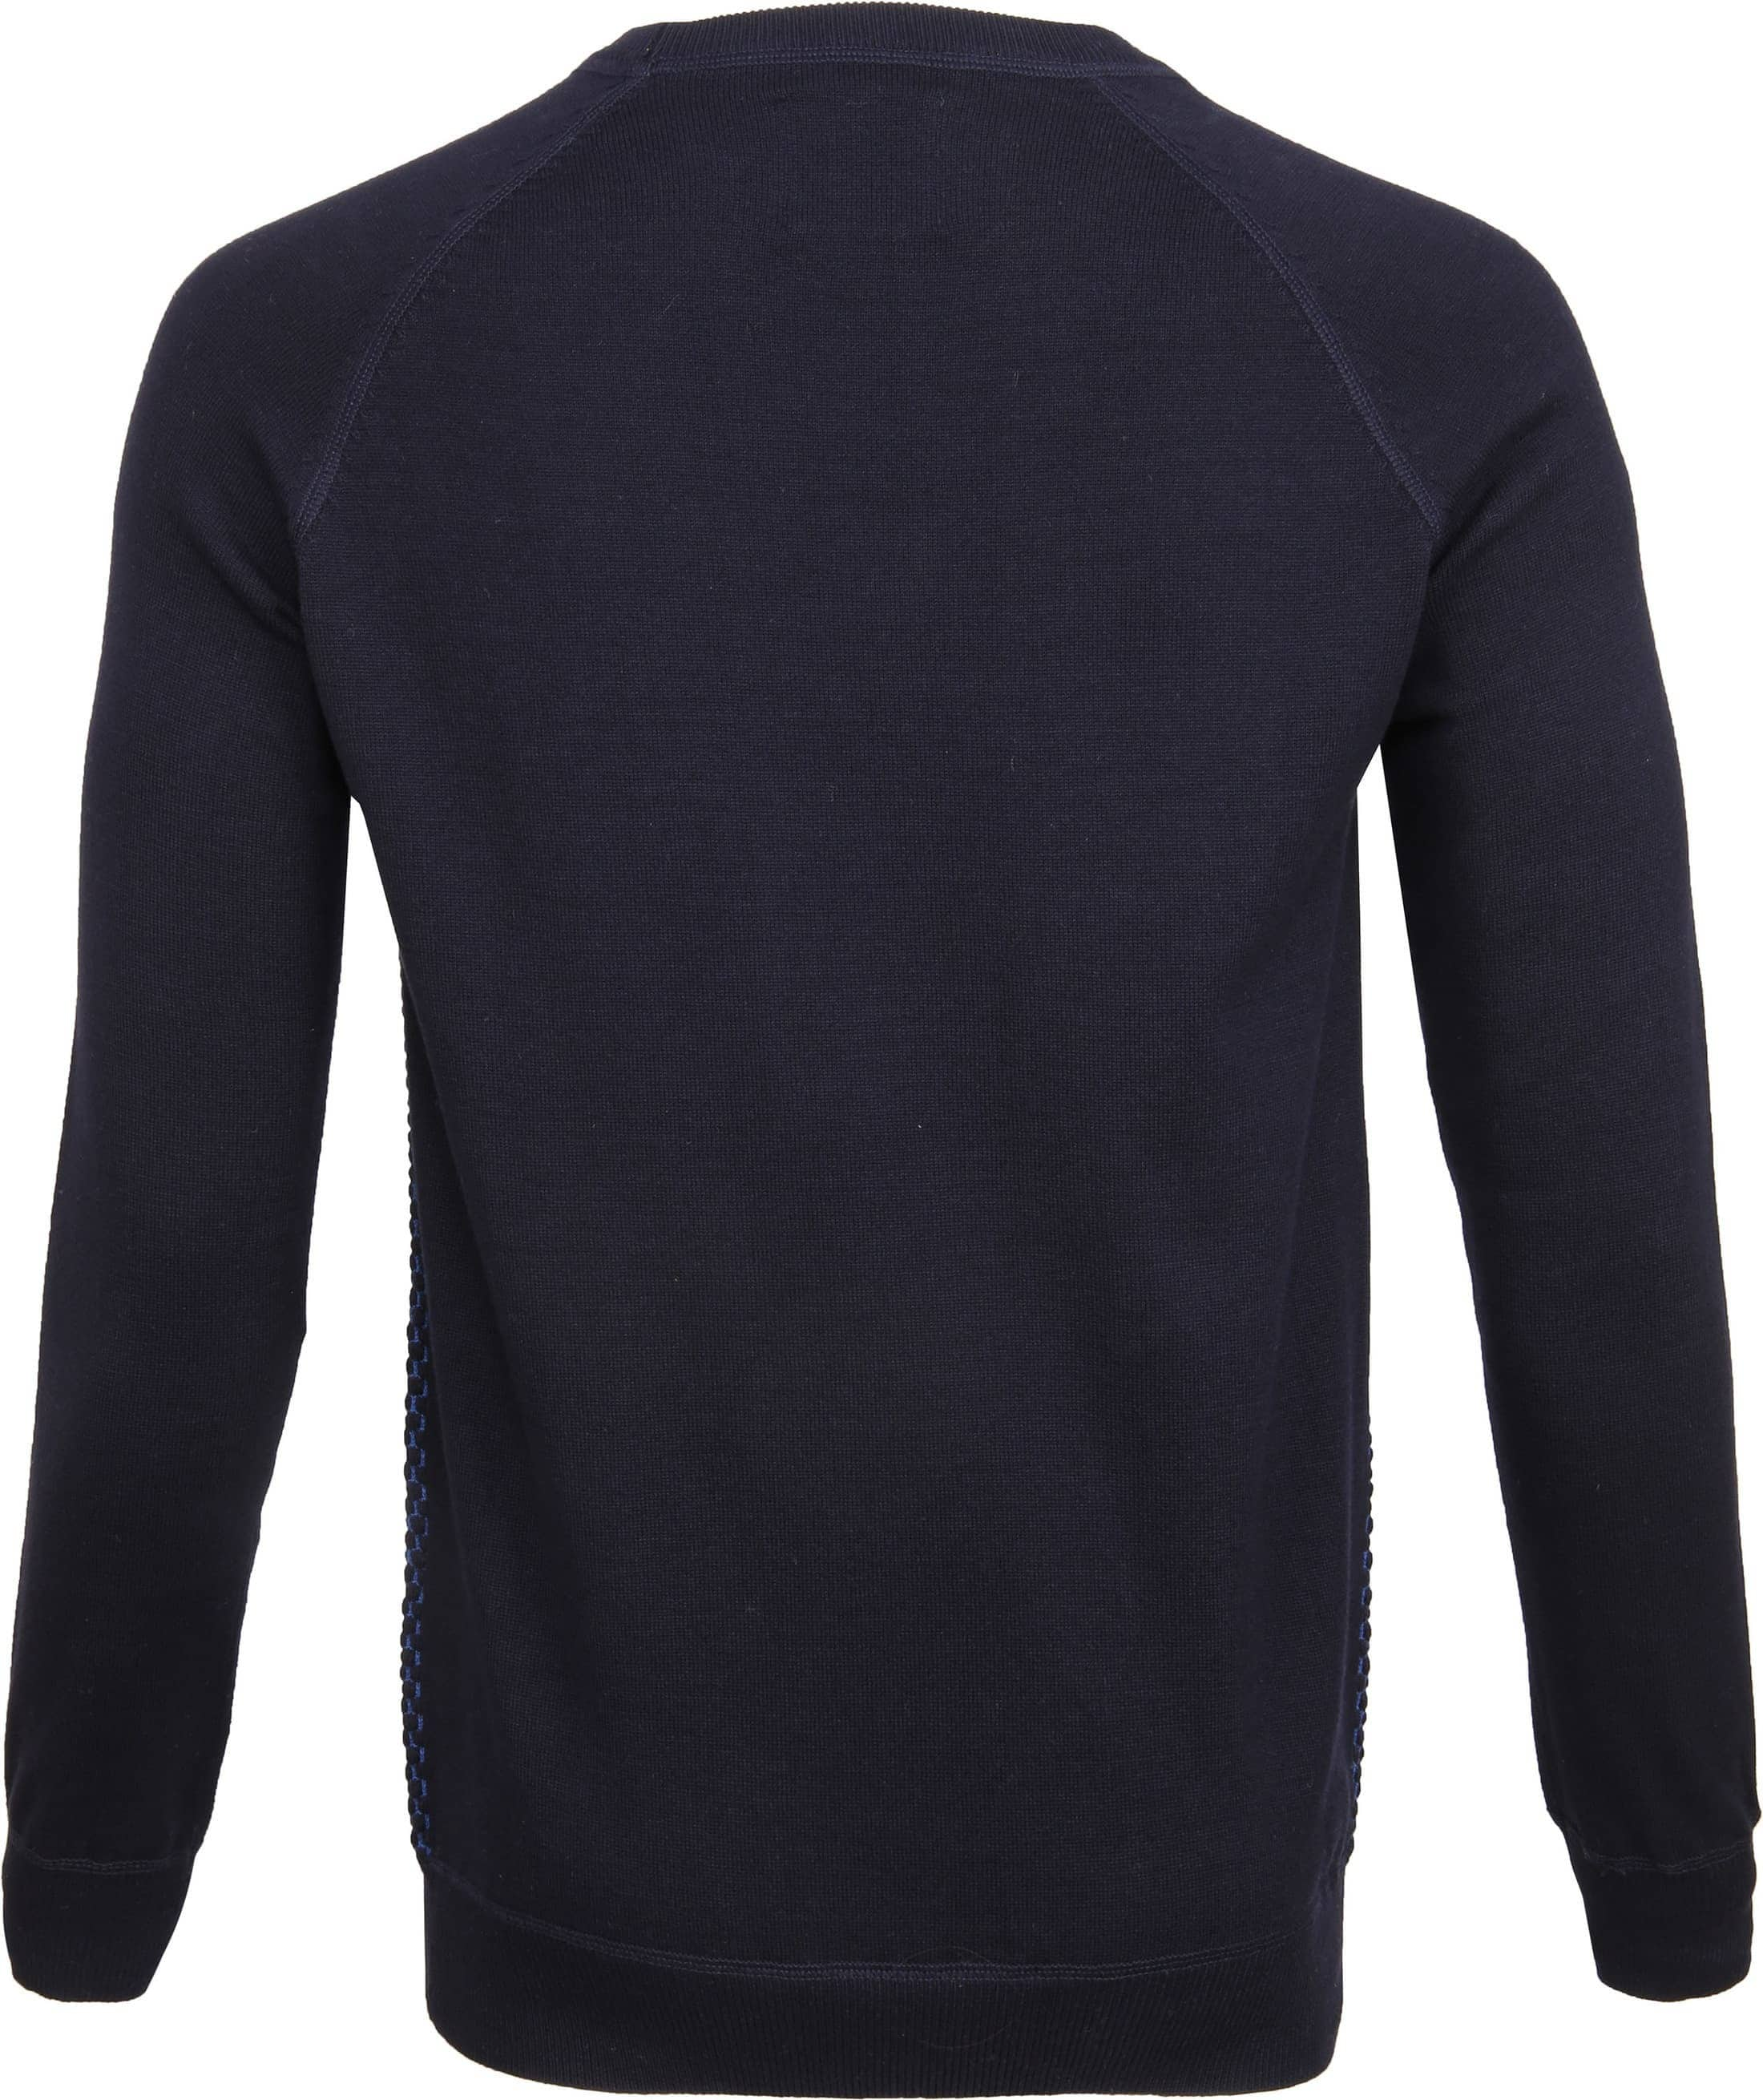 Suitable Katoen Trui Harry Navy Blauw